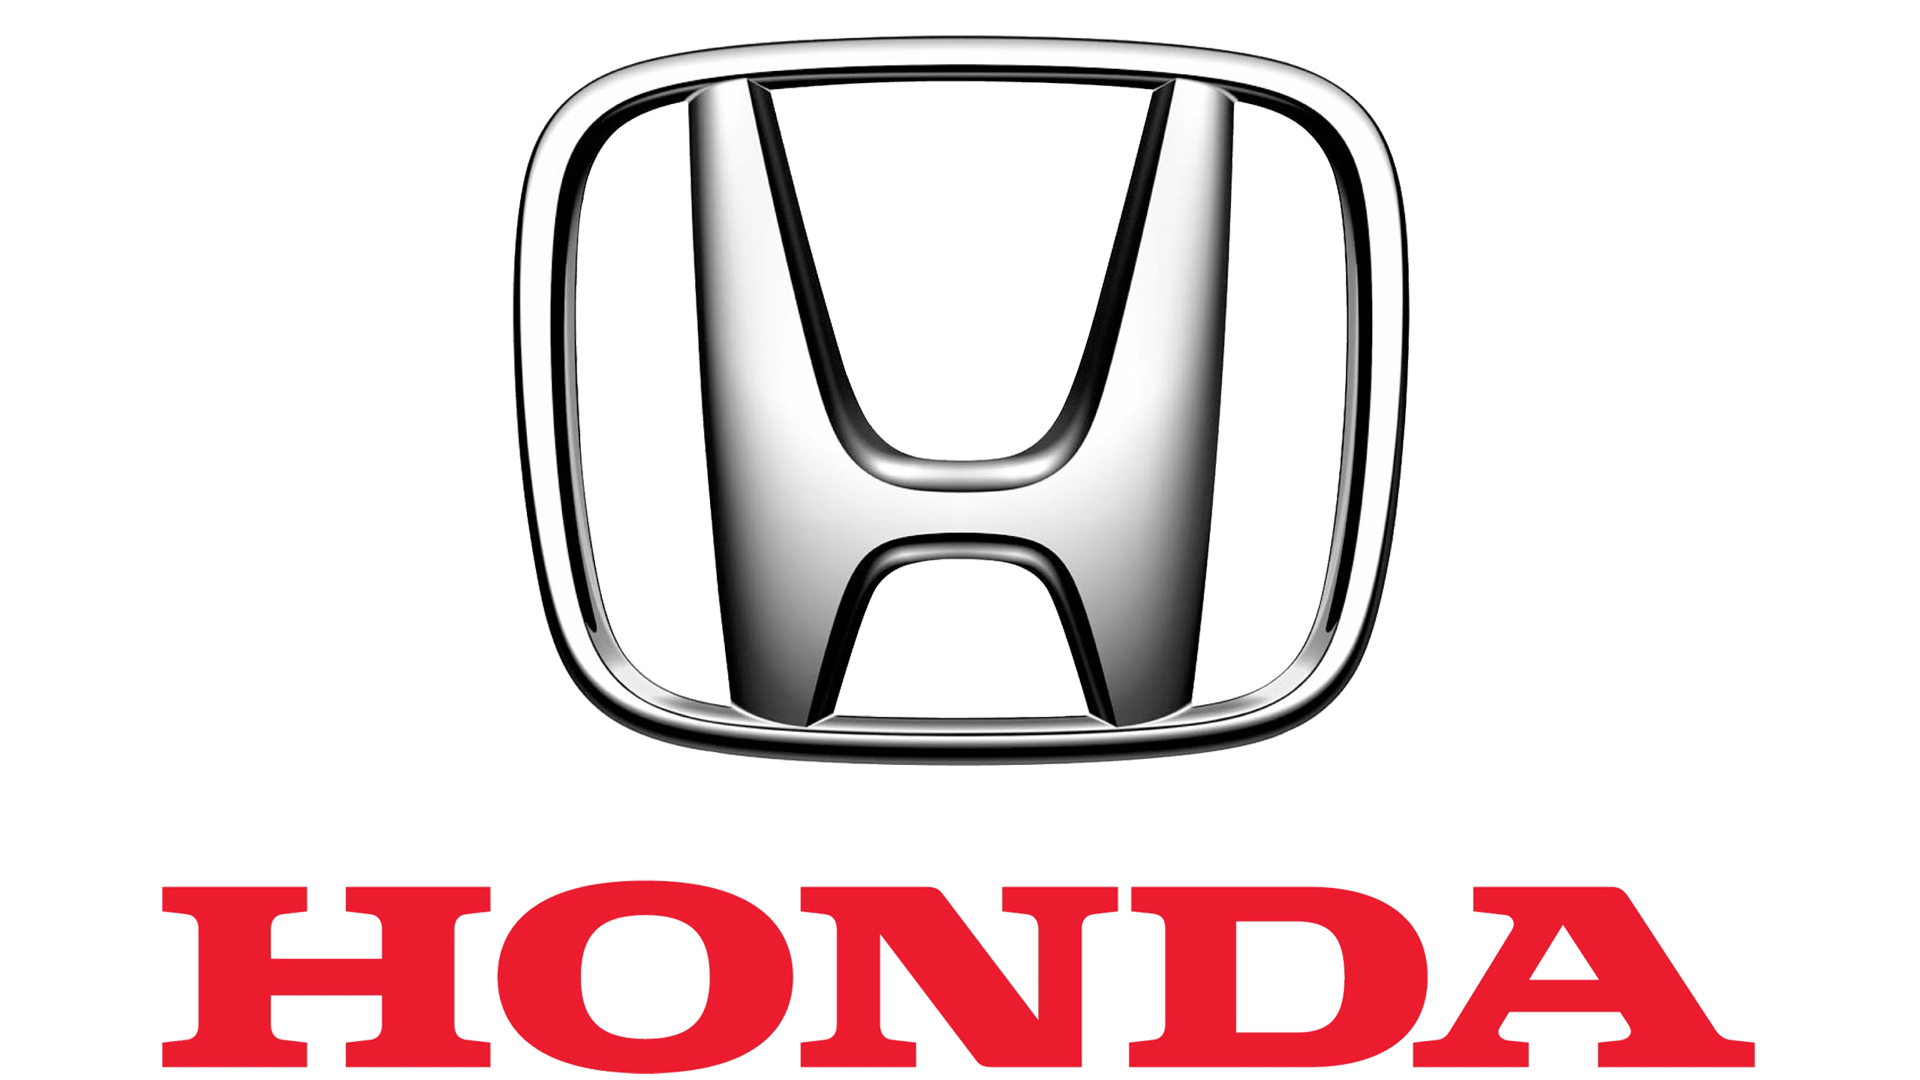 honda logo, hd 1080p, png, meaning, information